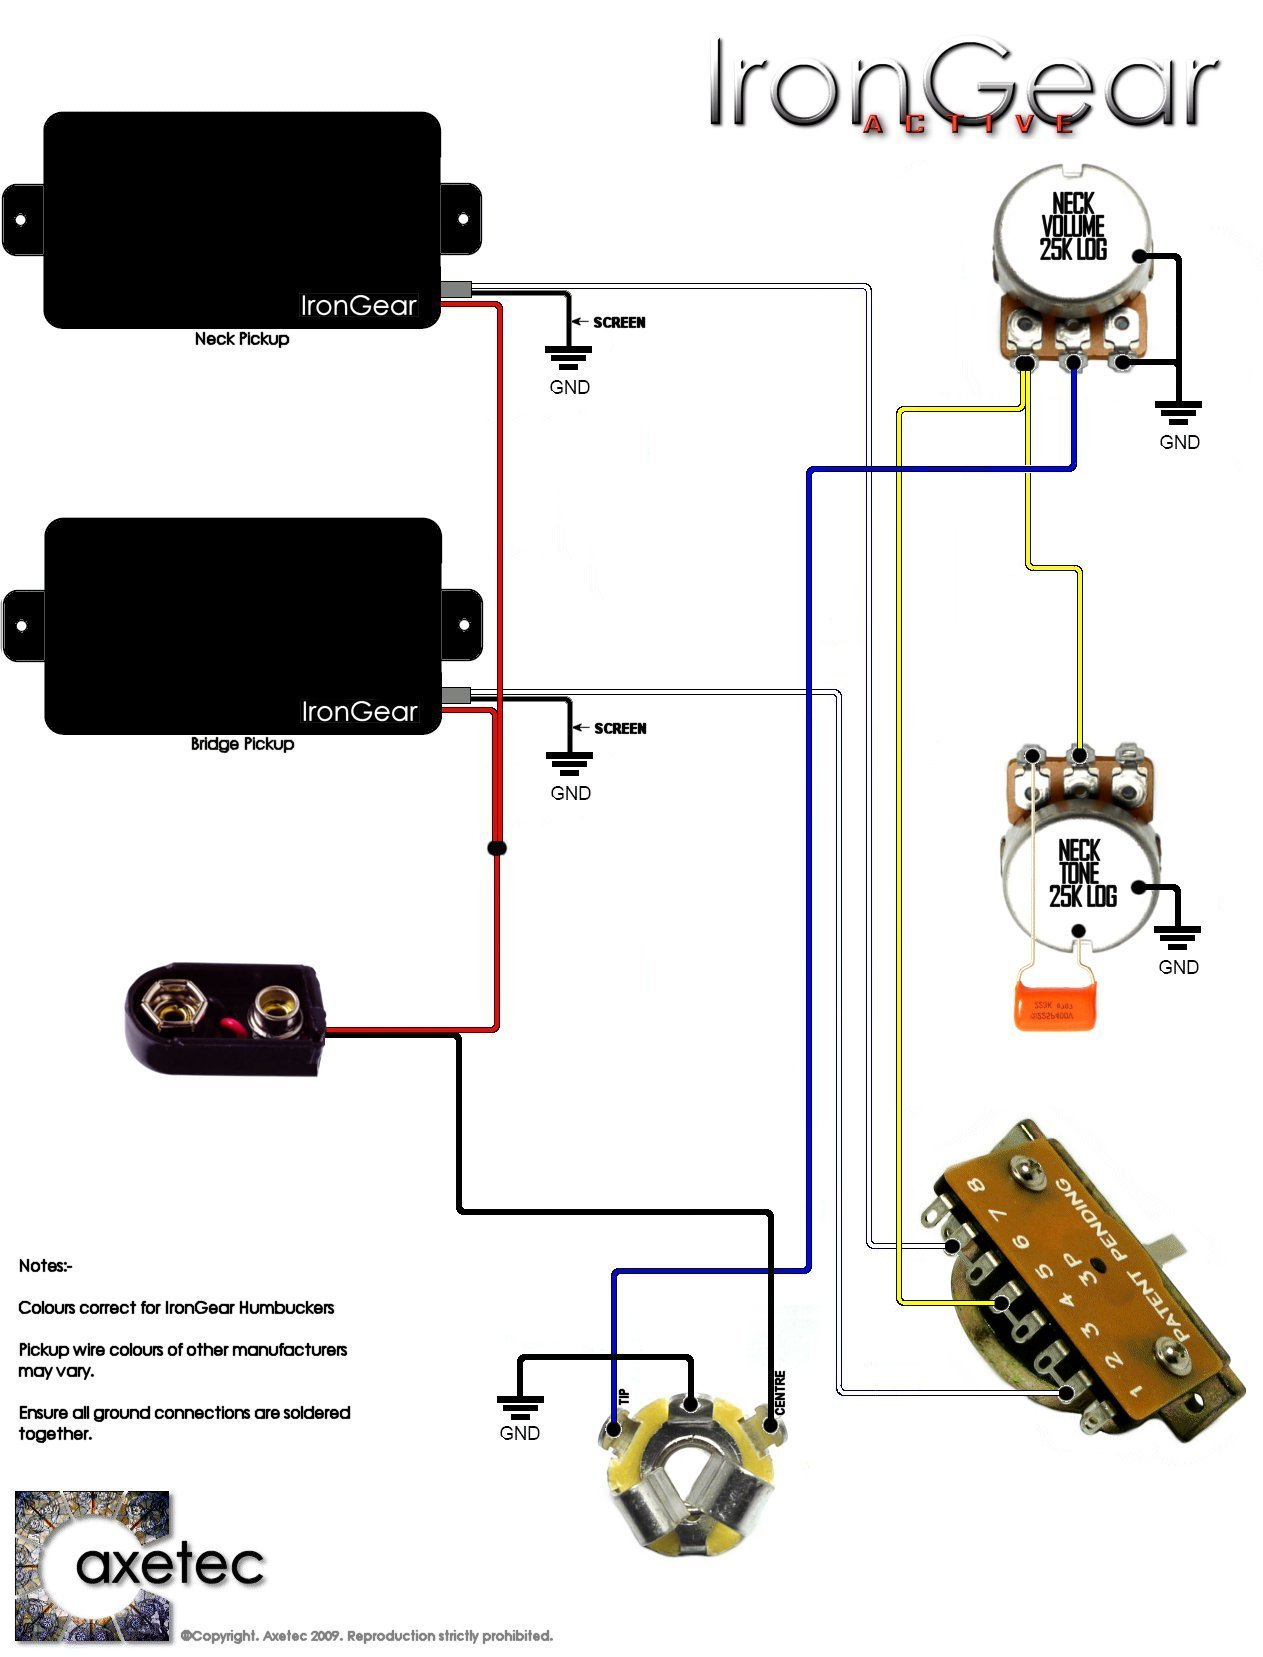 Emg Pickup Wiring Free Diagram For You Harbor Freight Camo Atv Winch Active Schematic Diagrams Rh 5 Koch Foerderbandtrommeln De Kit Les Paul